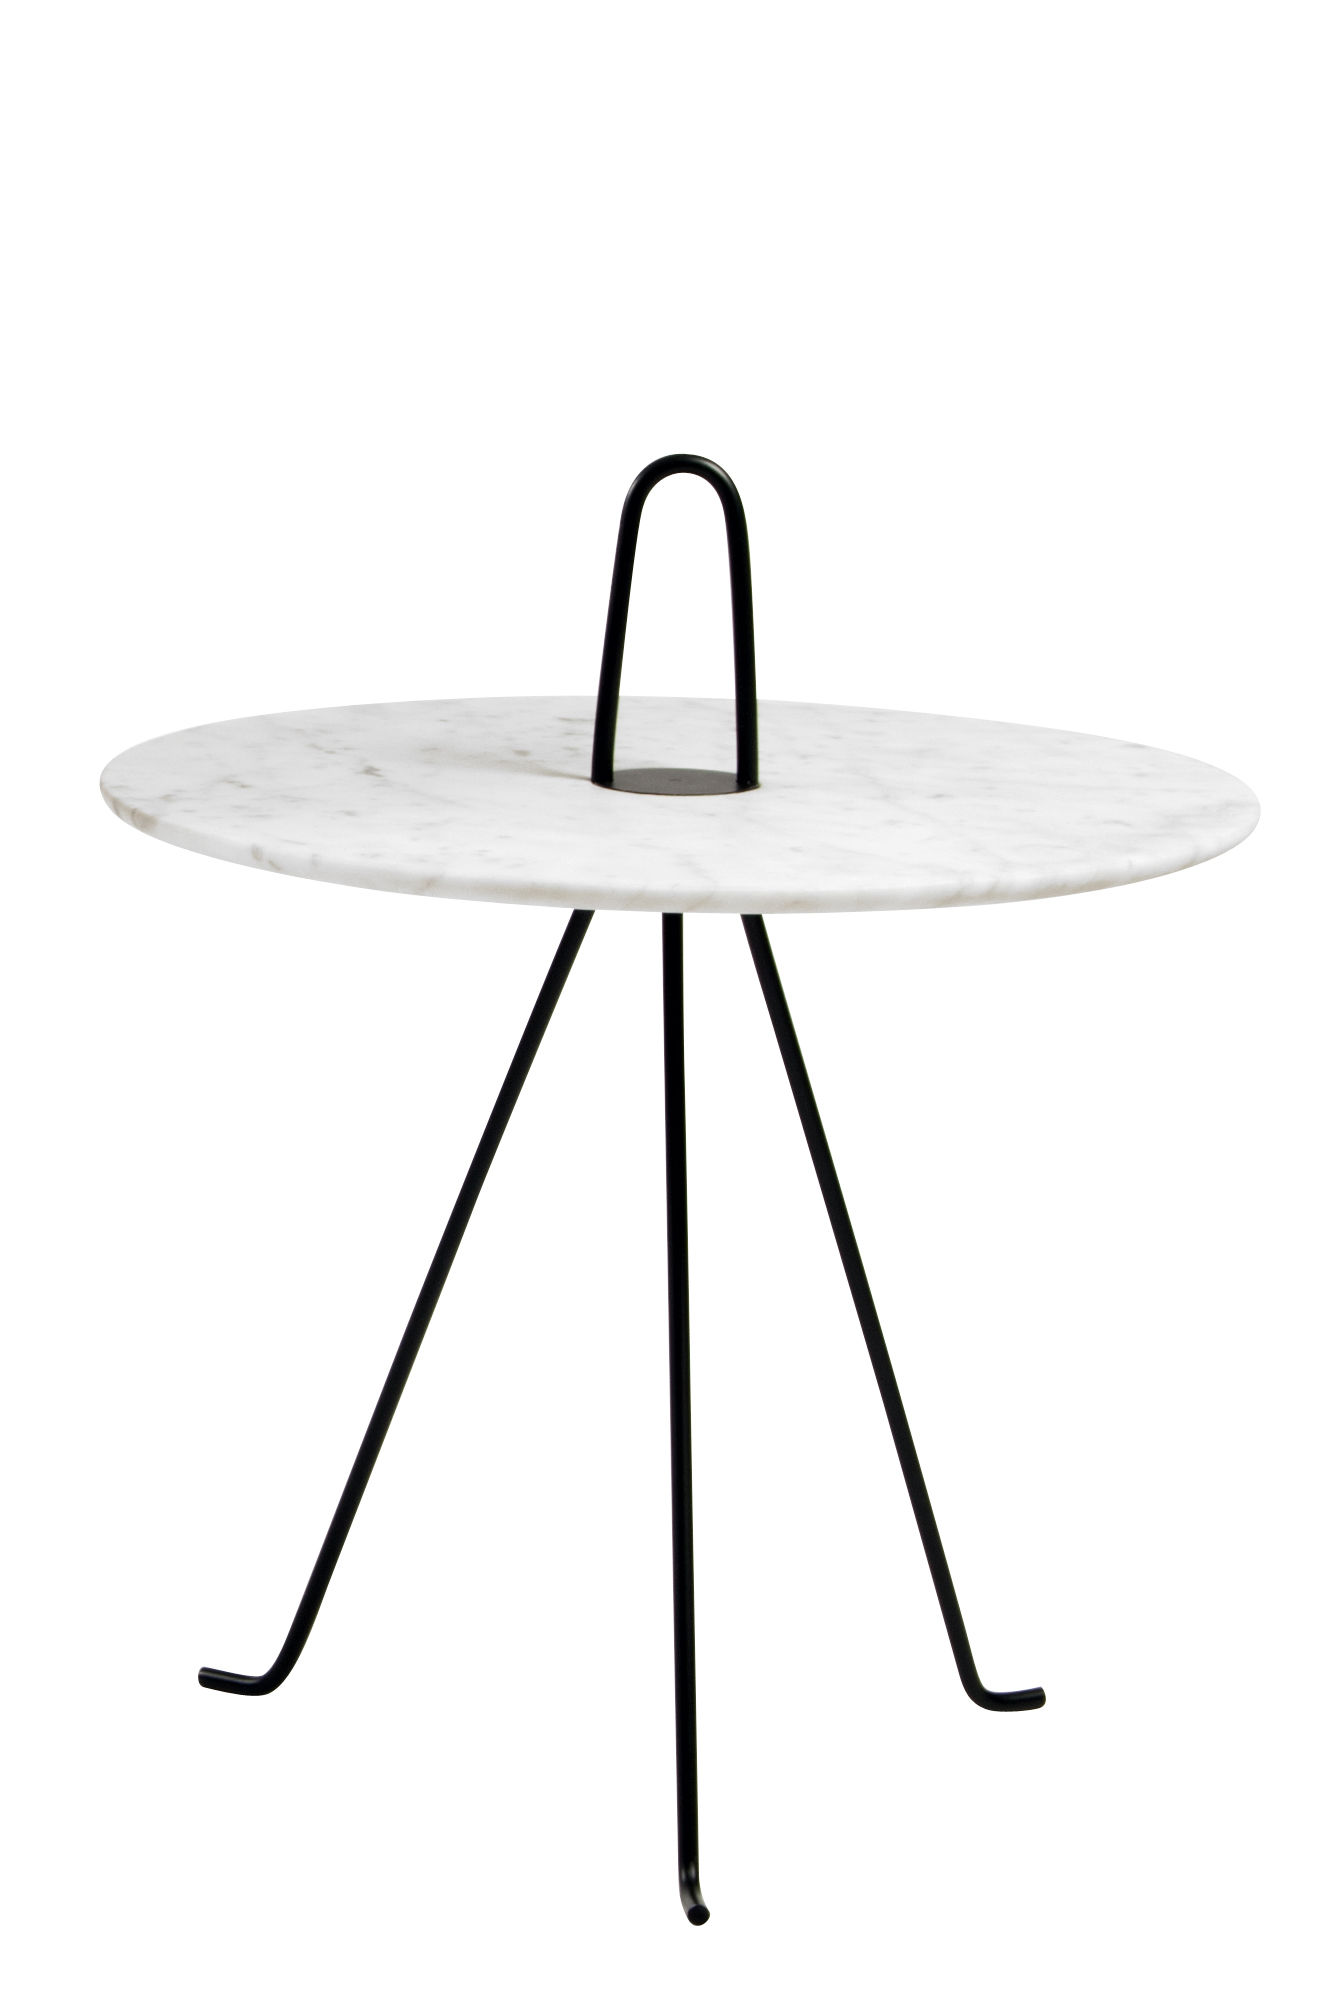 Furniture - Coffee Tables - Tipi End table - Ø 42 x H 37 cm - Marble by Objekto - White marble / Black leg - Carrare marble, Painted recycled steel